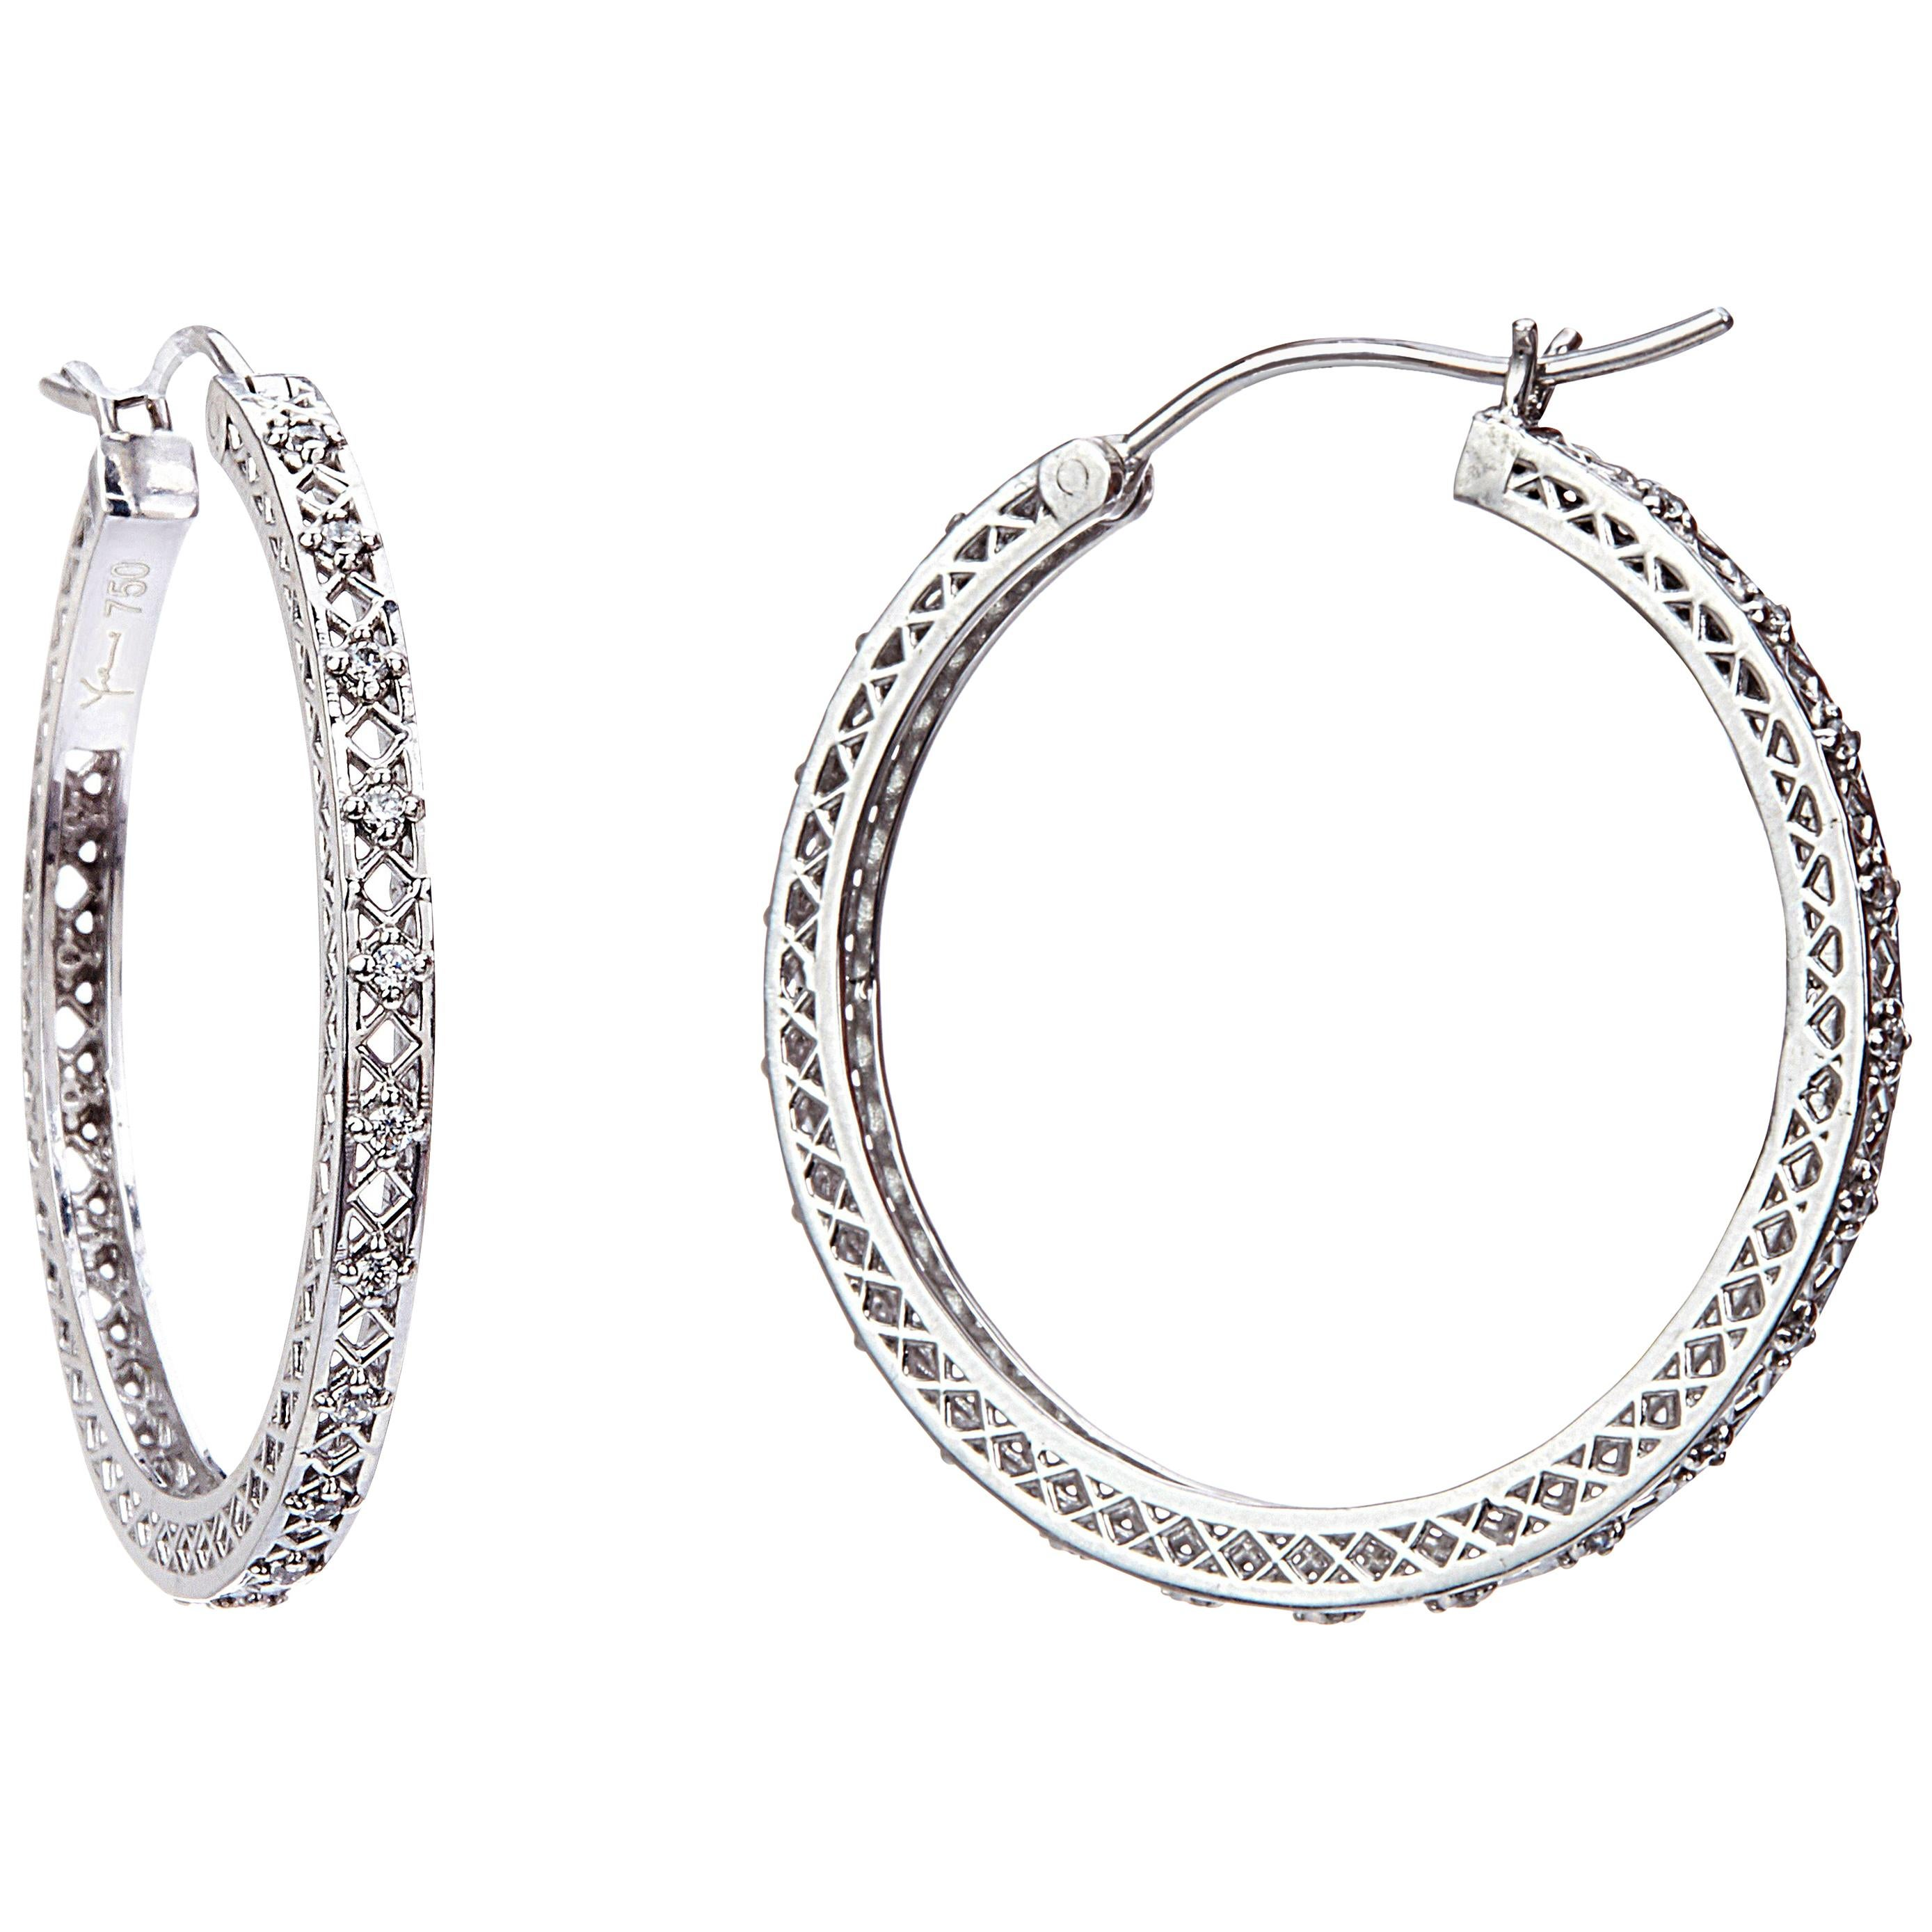 2c0009876c3 0 TO 0.5 Carat Earrings - 179 For Sale at 1stdibs